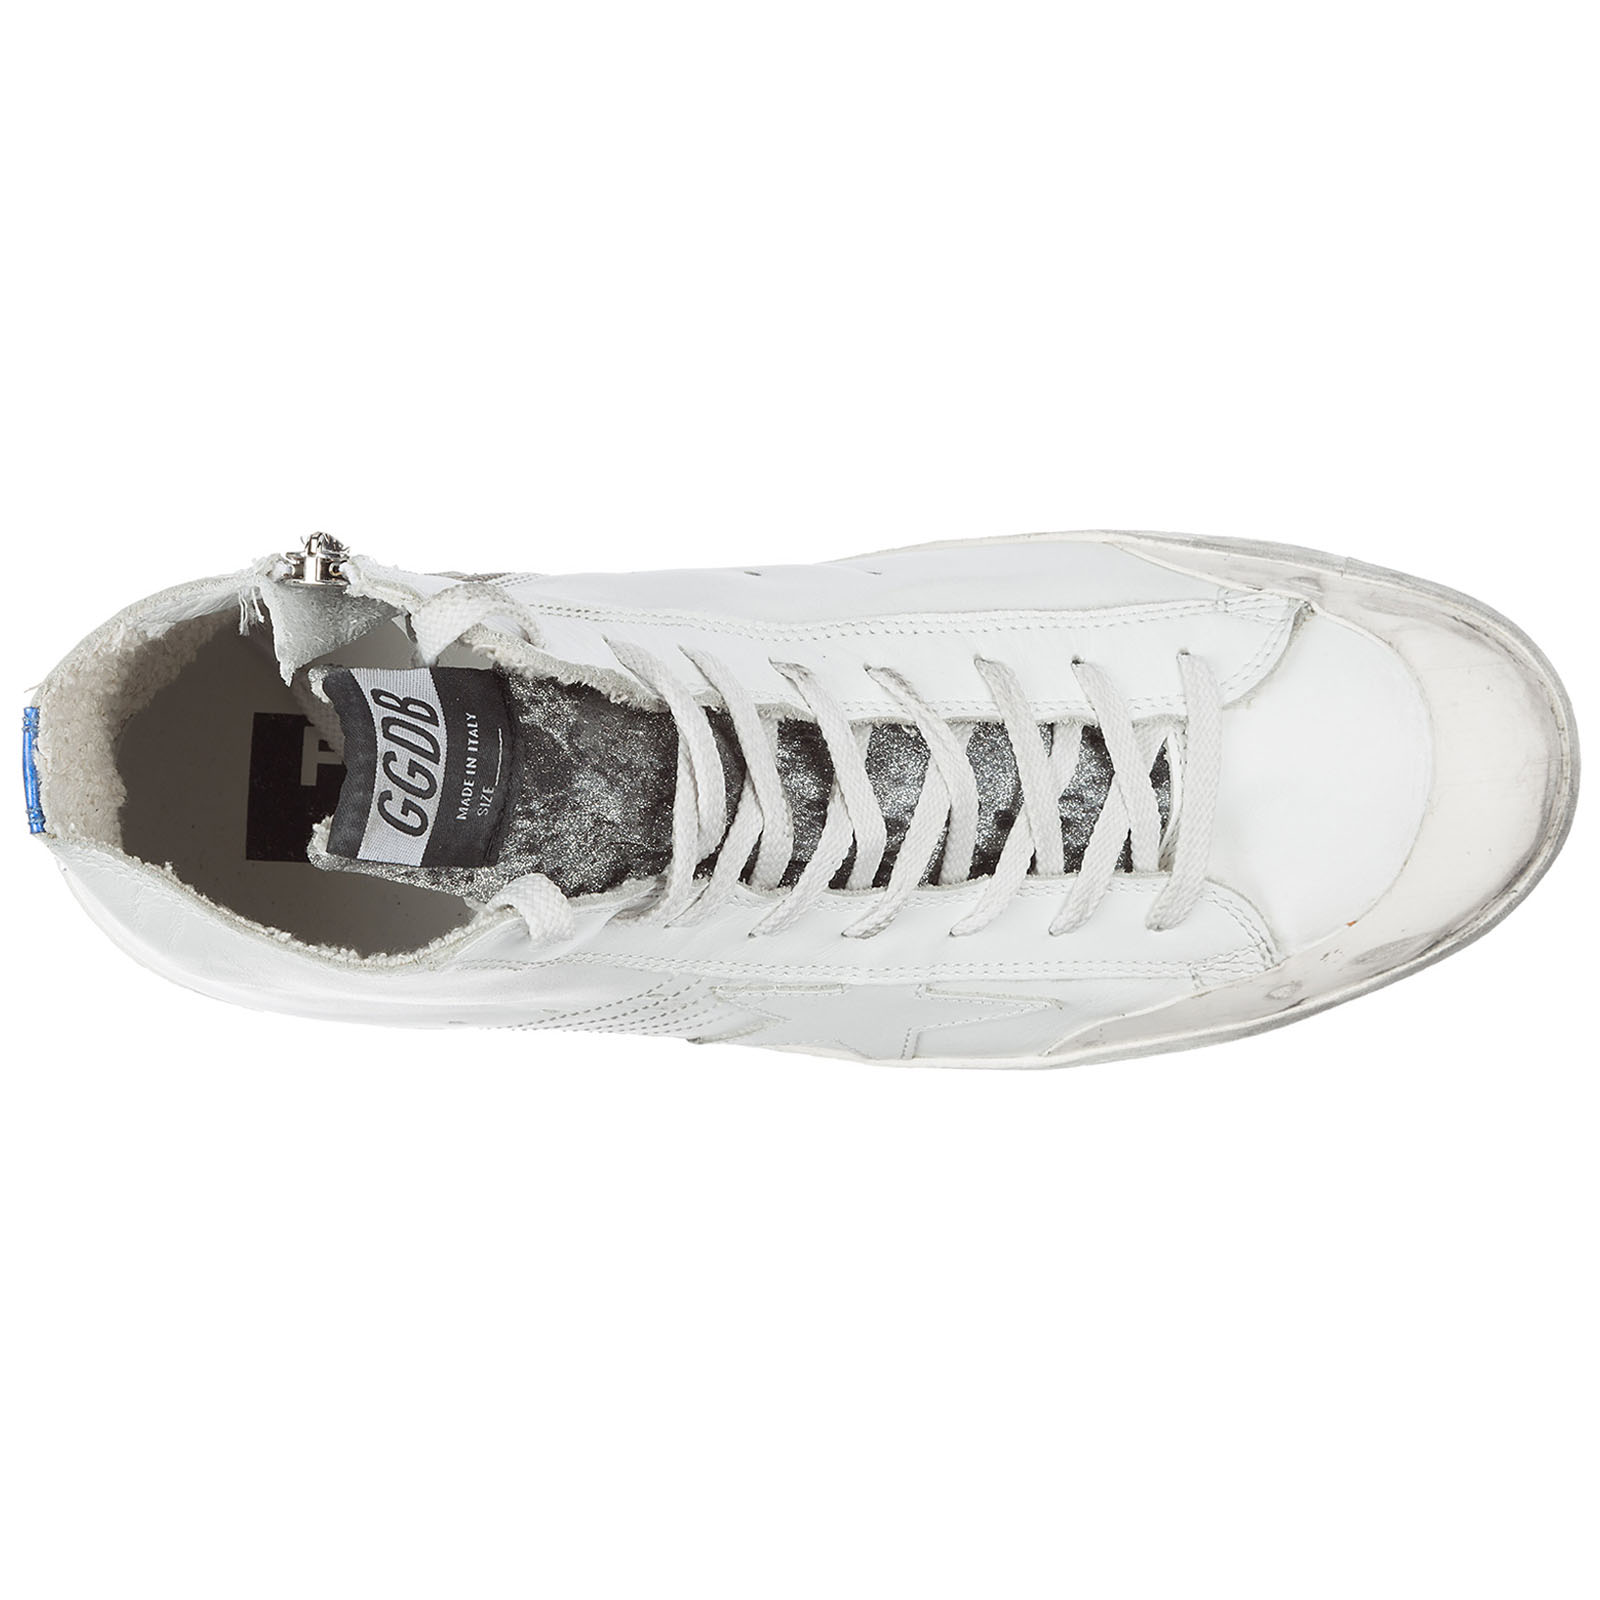 Scarpe sneakers alte uomo in pelle francy limited edition landed